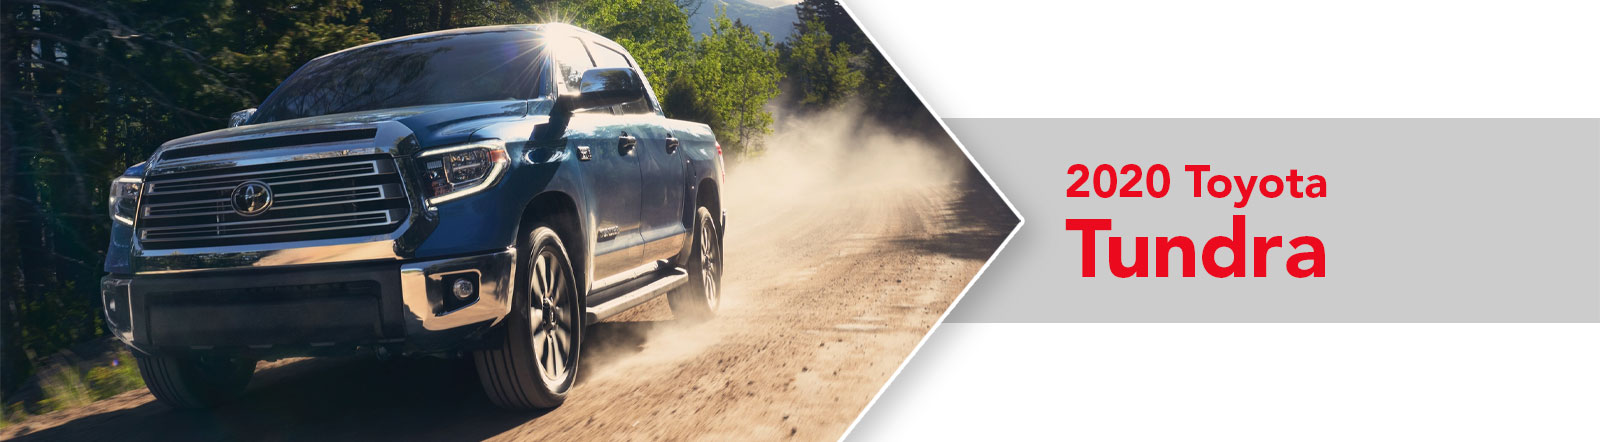 All-New 2020 Toyota Tundra For Sale in Metairie, LA